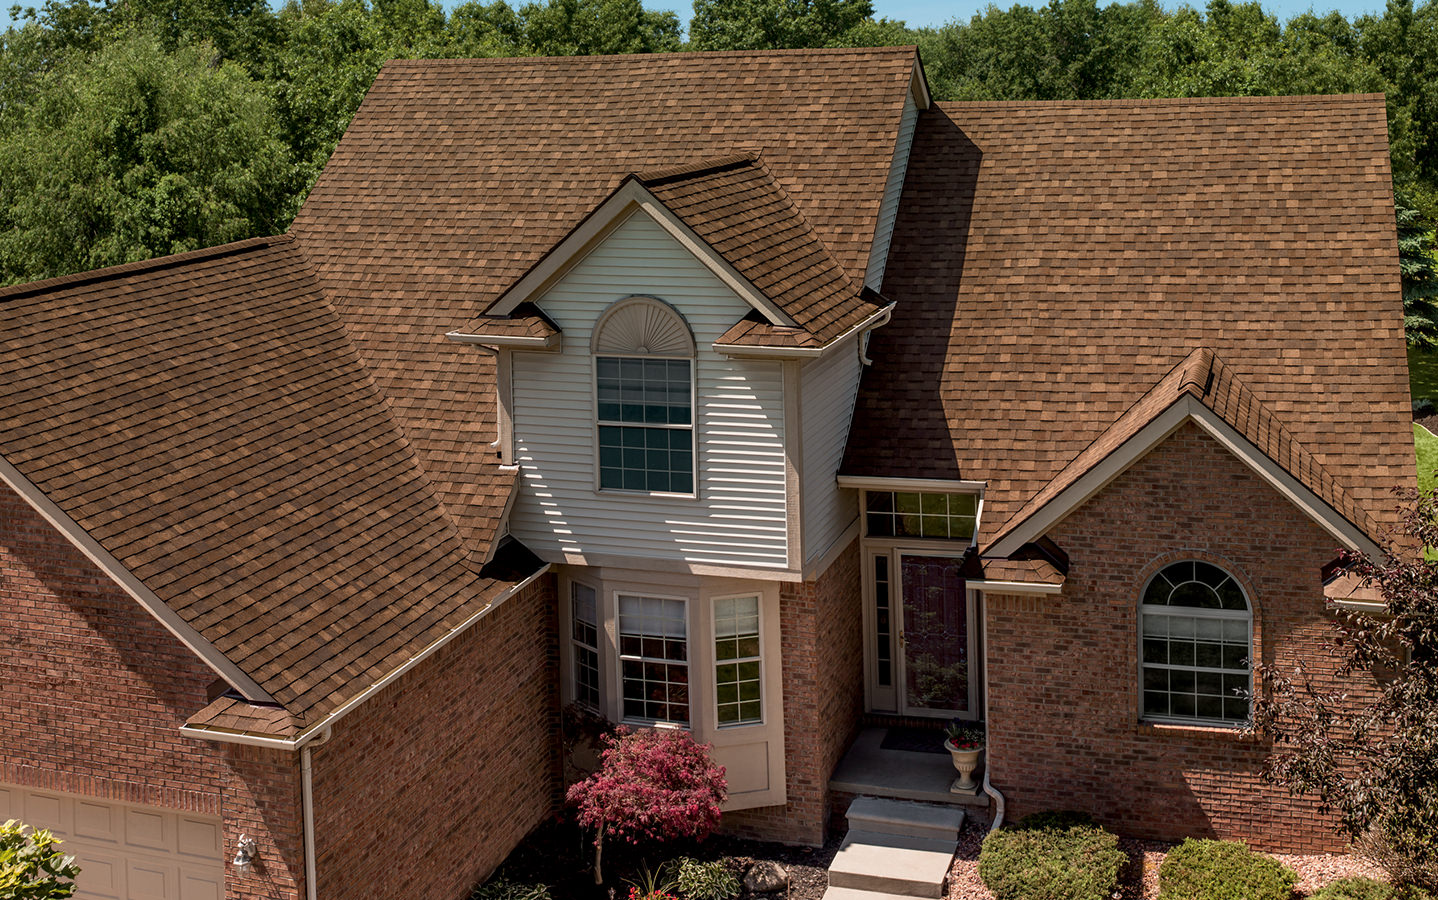 Oakridge Owens Corning